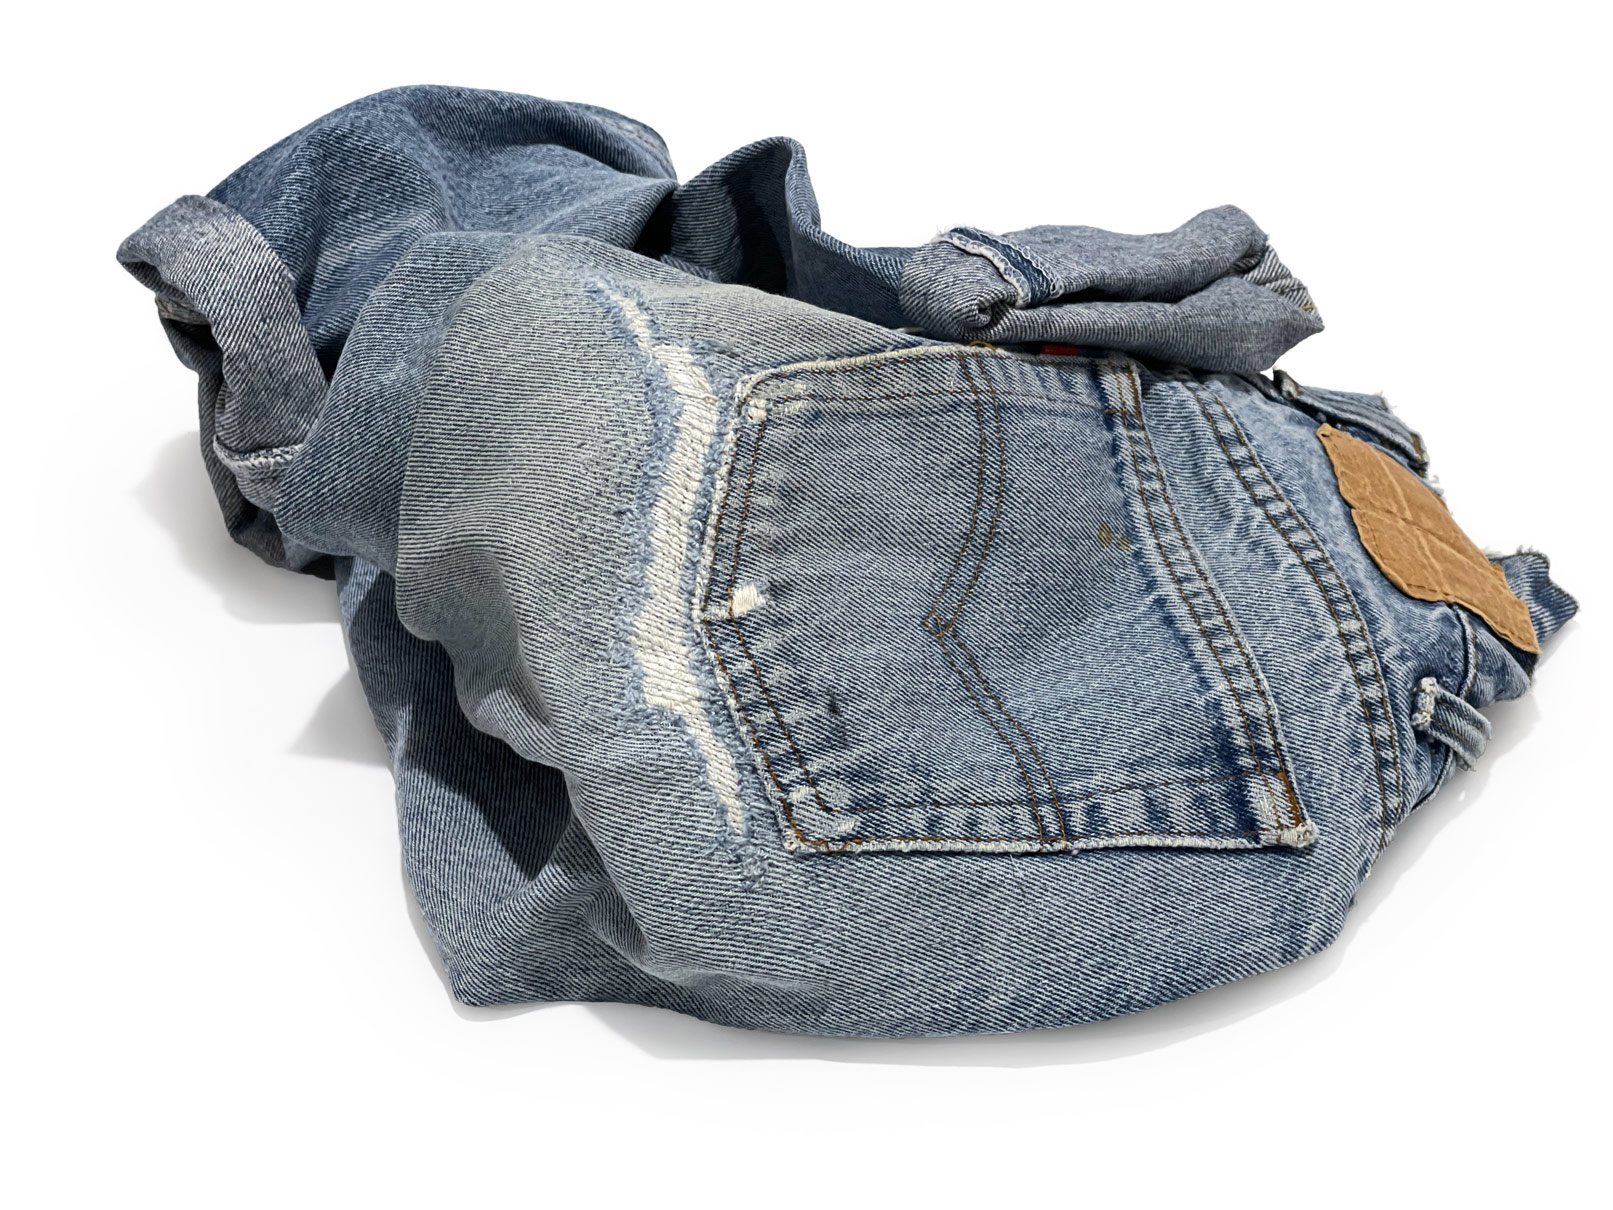 Shop denim repairs to fix rips and holes in jeans.